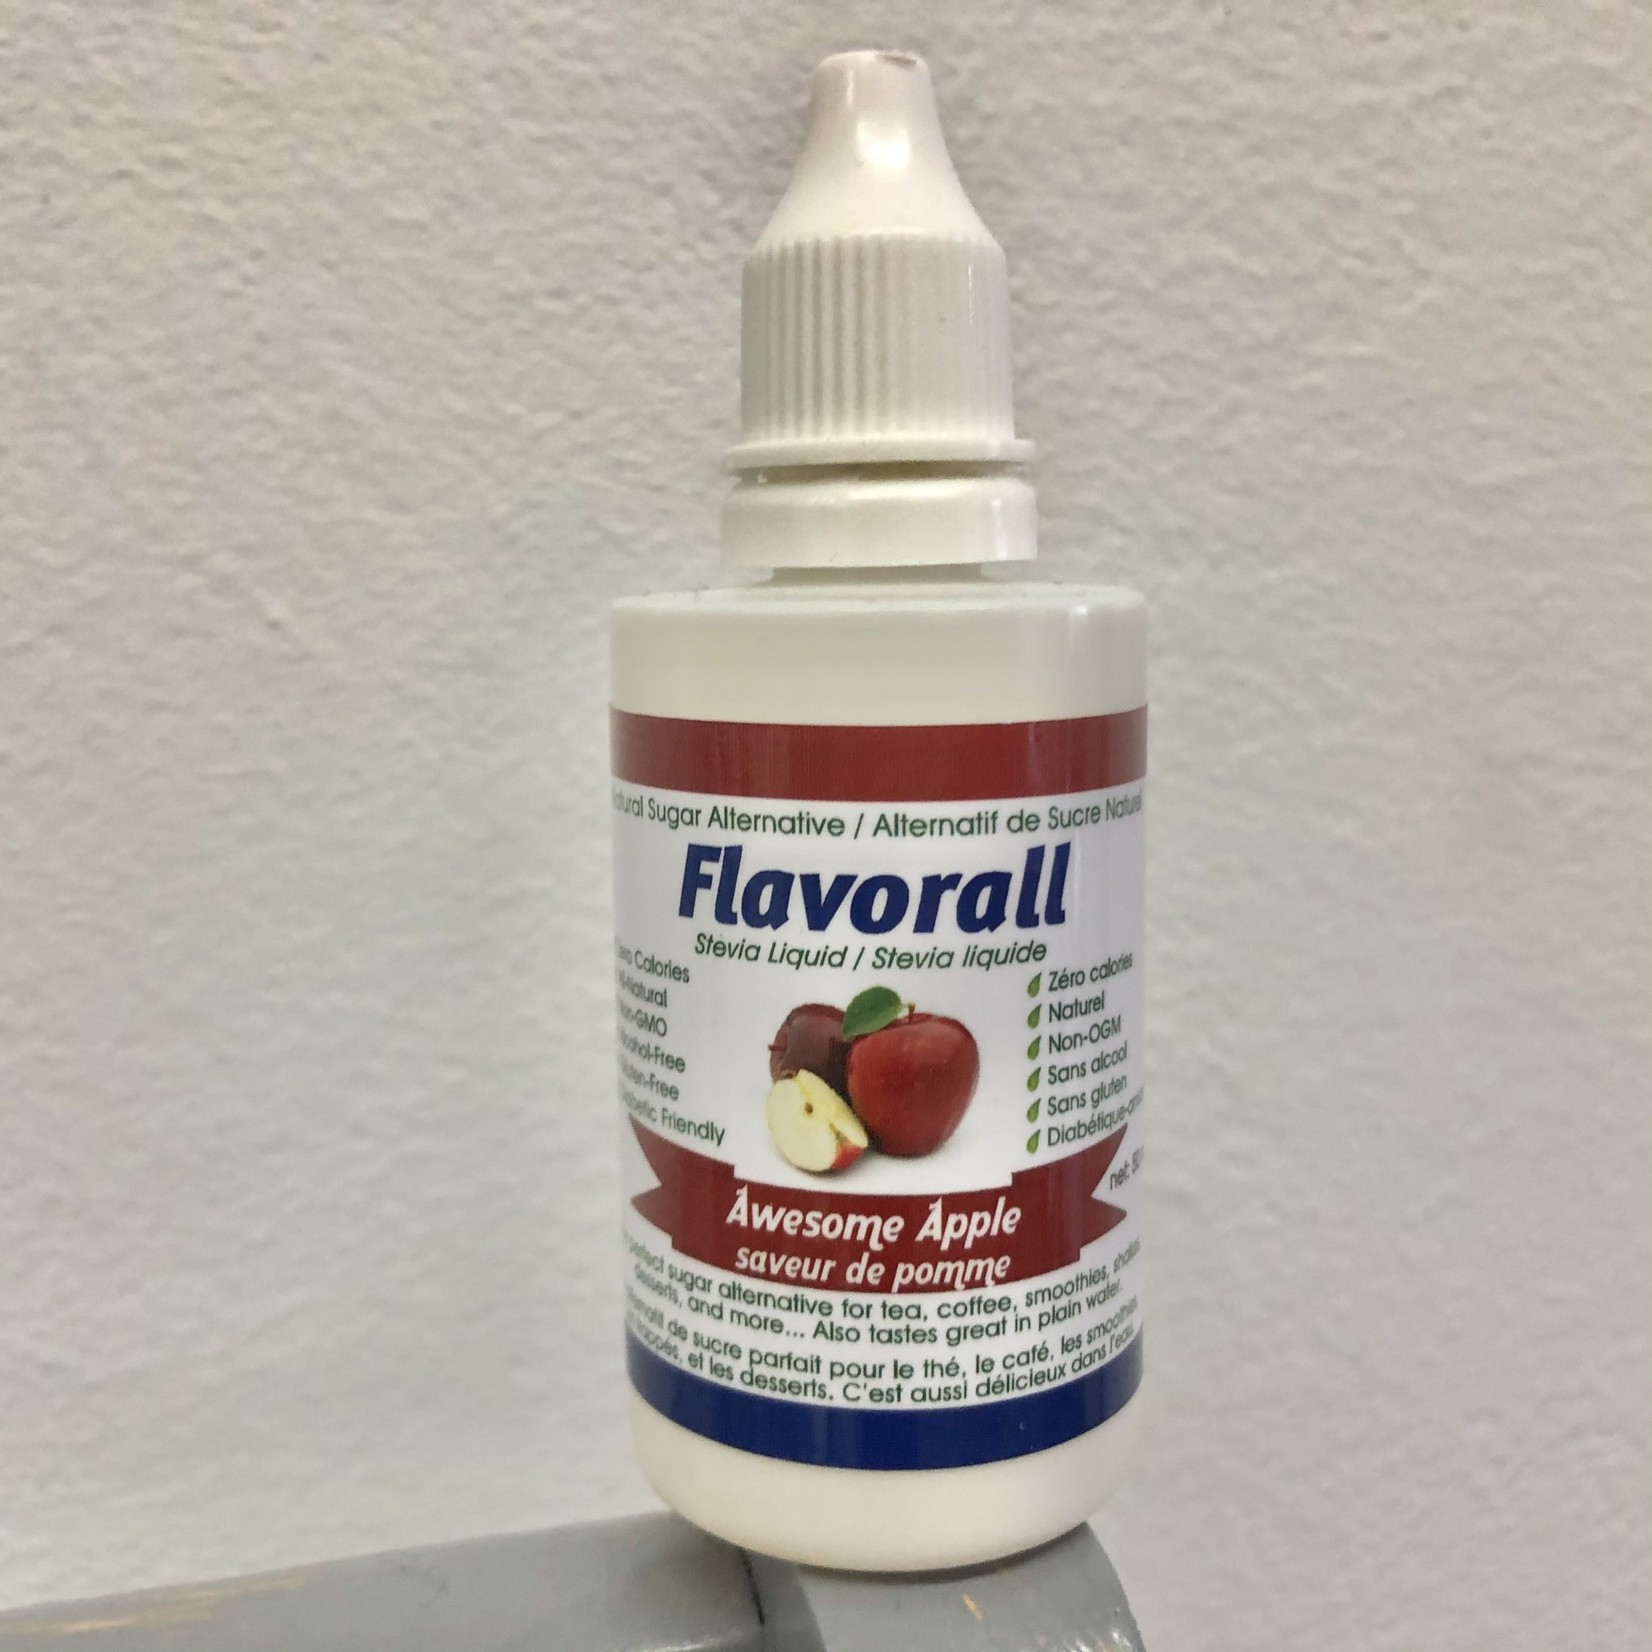 Flavorall Flavorall Stevia Liquid 50ml - Awesome Apple